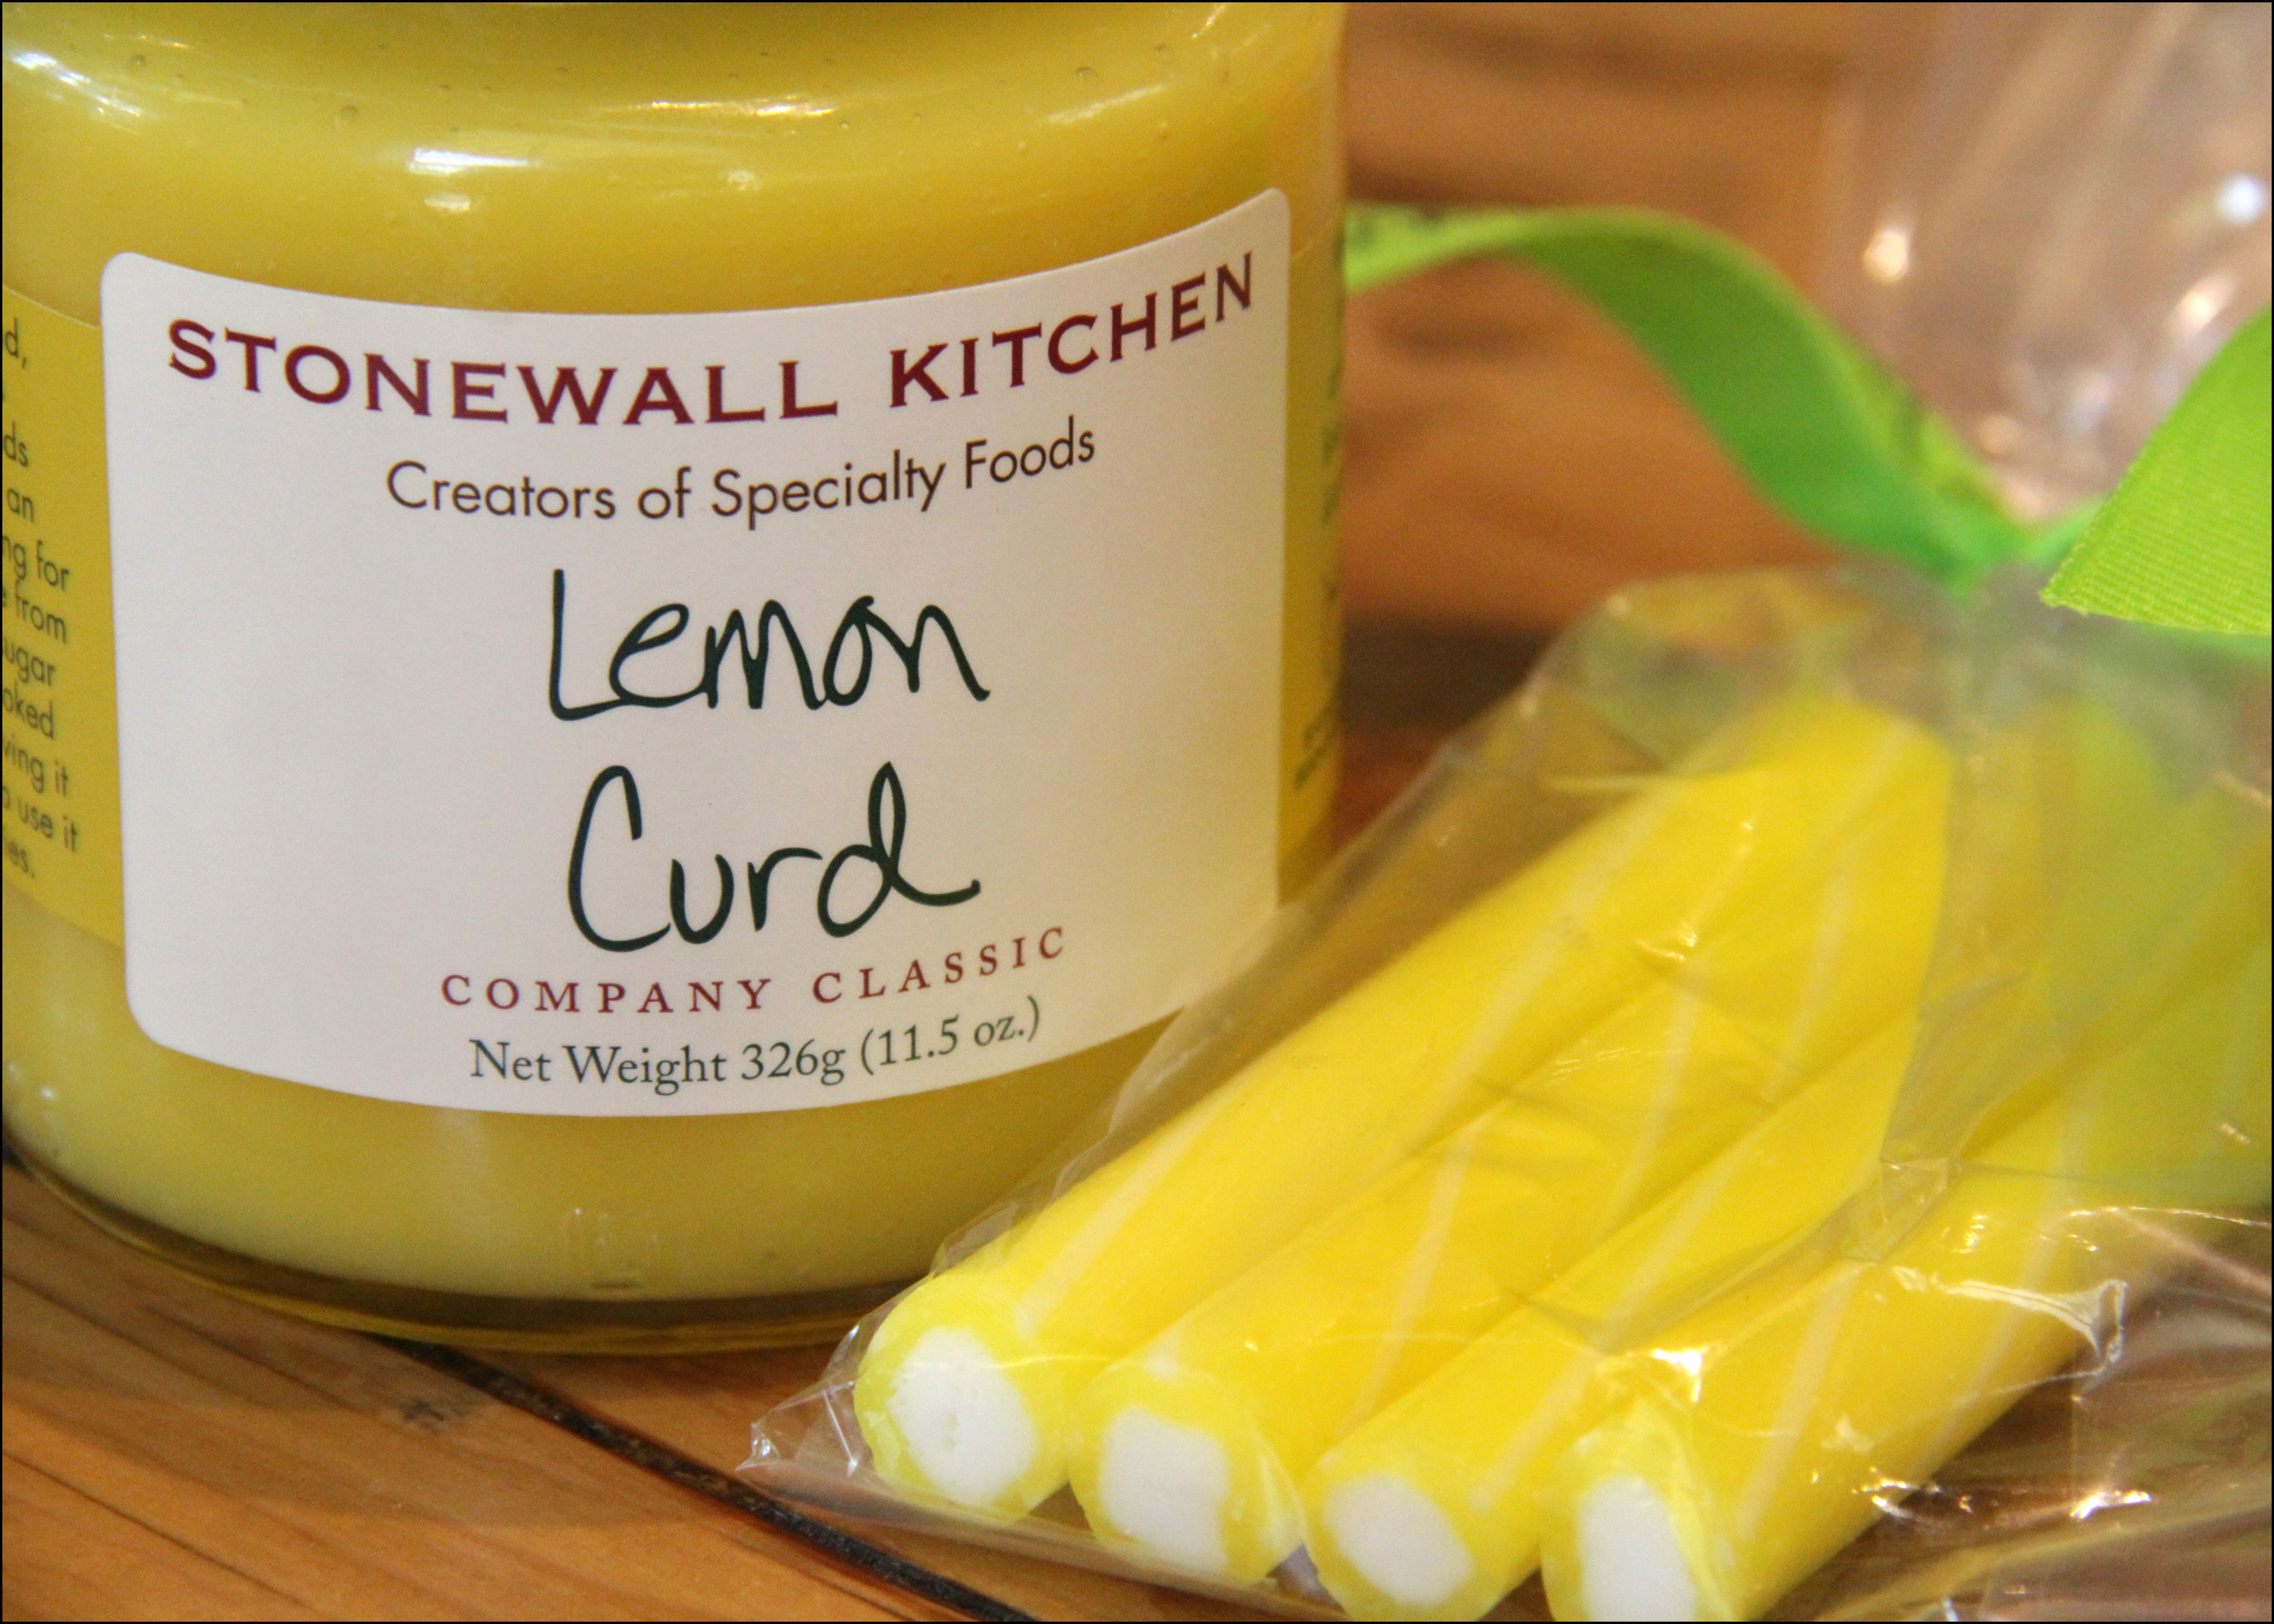 Cake Recipes Using Lemon Curd: Refreshing Dessert Recipes: Lemon Curd